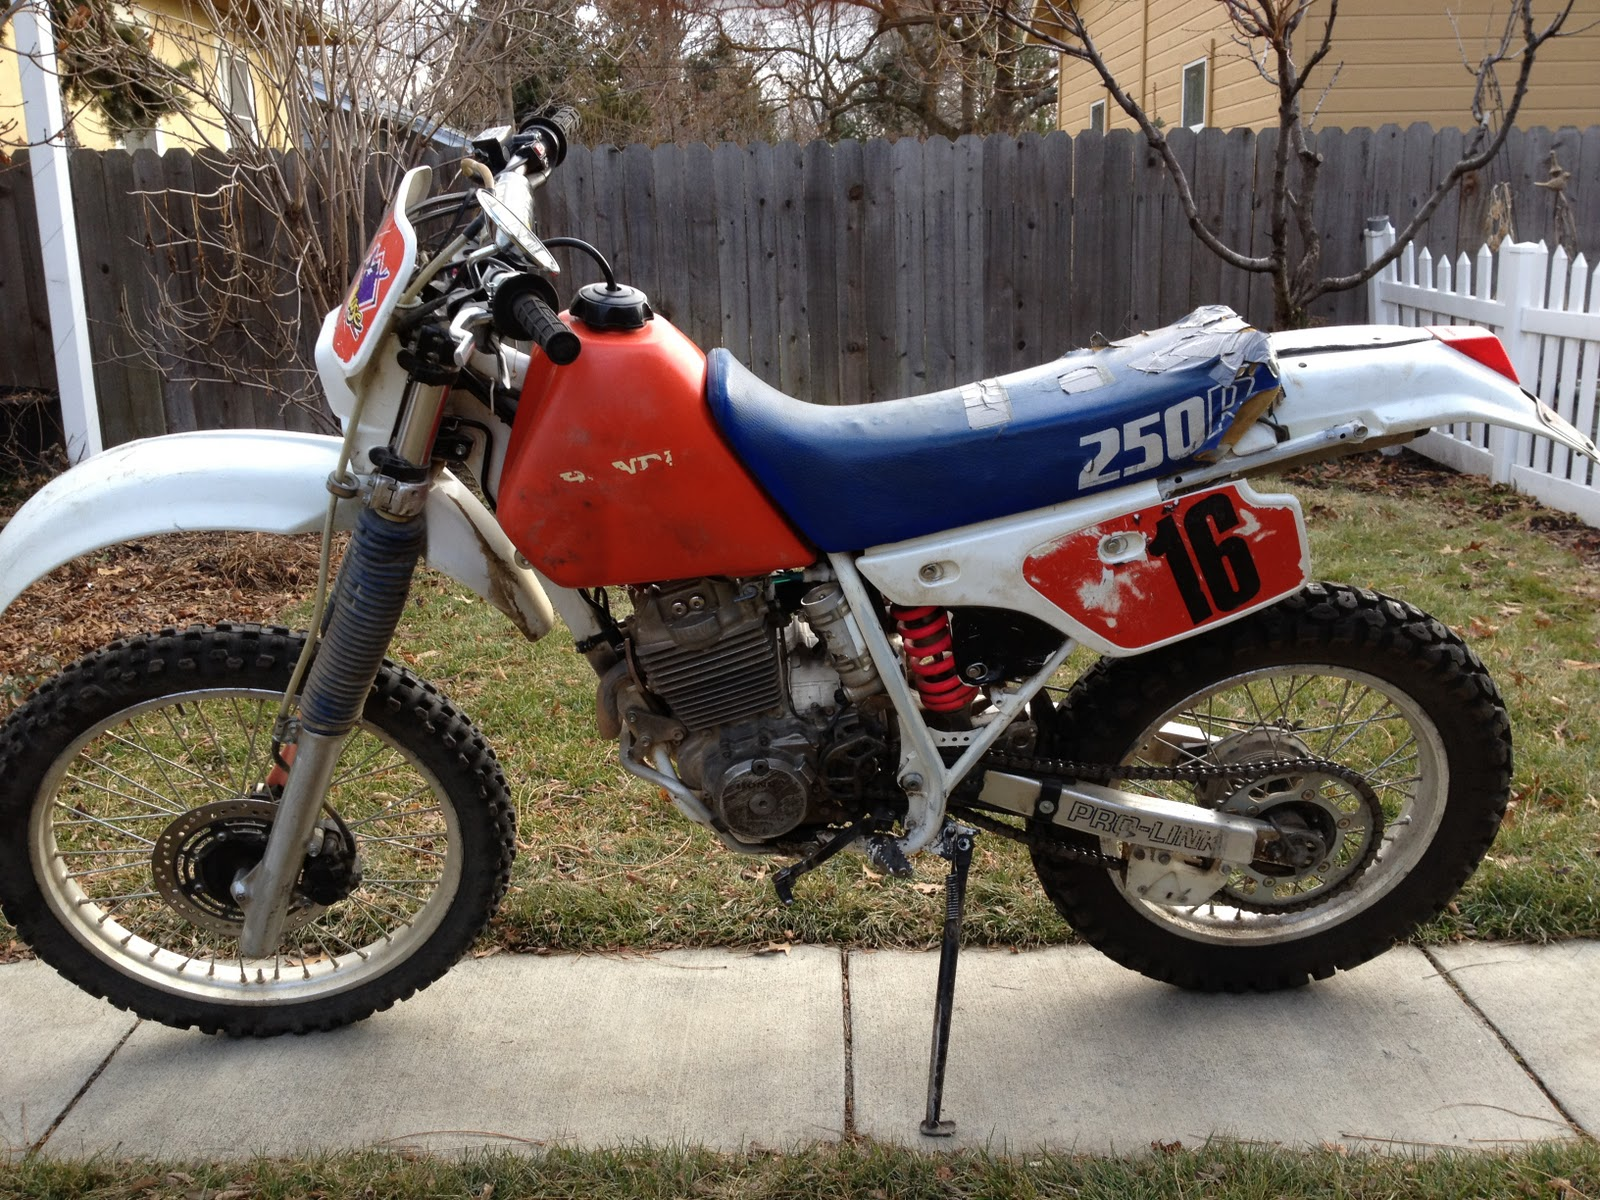 Every Honda Xr250r Dirt Bike For Sale.html | Autos Weblog